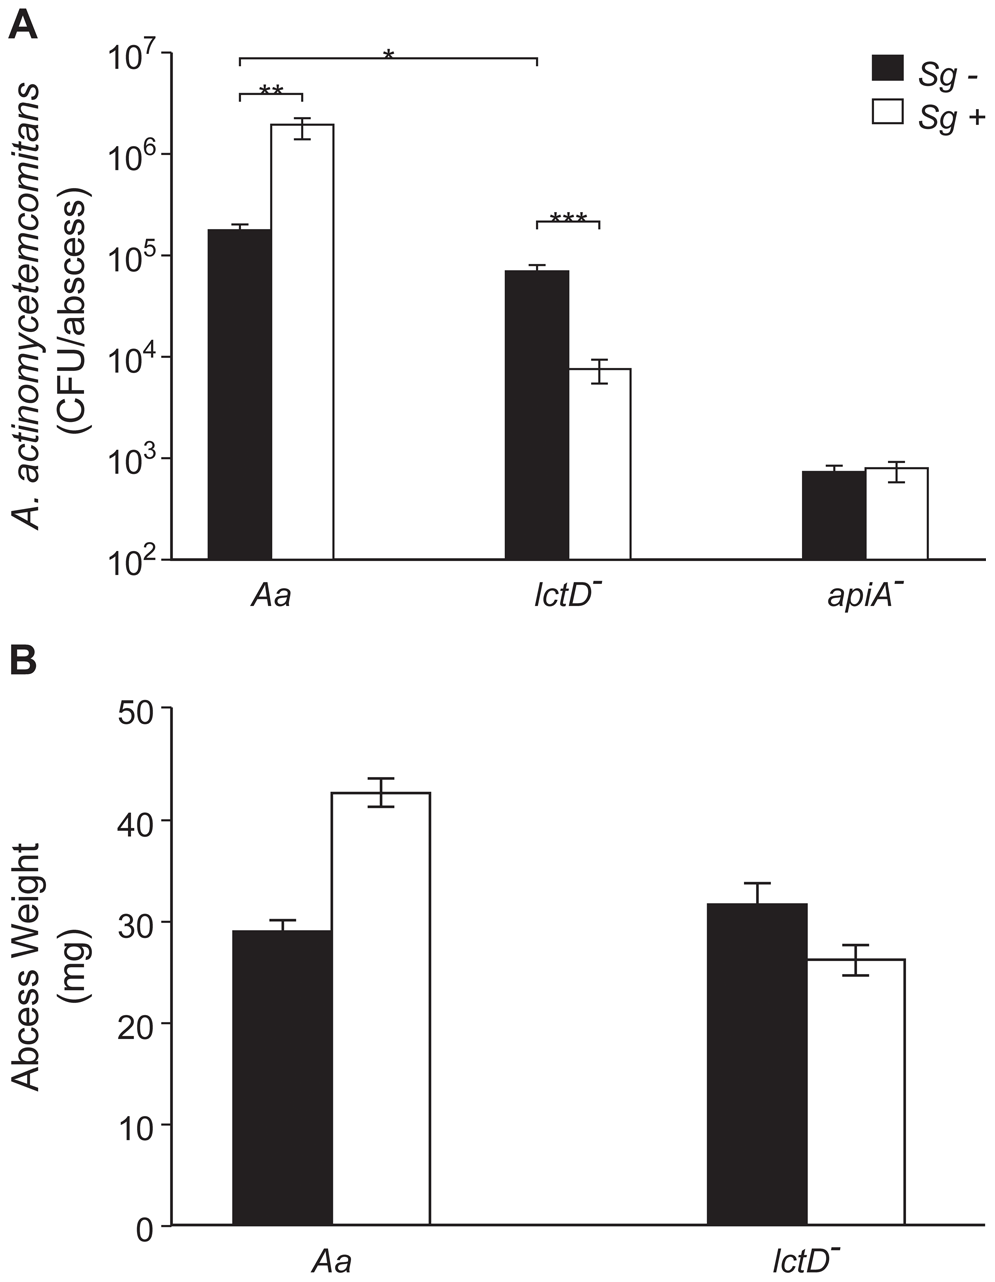 Persistence of <i>A. actinomycetemcomitans</i>, <i>A. actinomycetemcomitans lctD</i><sup>-</sup>, and <i>A. actinomycetemcomitans apiA</i><sup>-</sup> in mono- or co-culture in a murine abscess model.